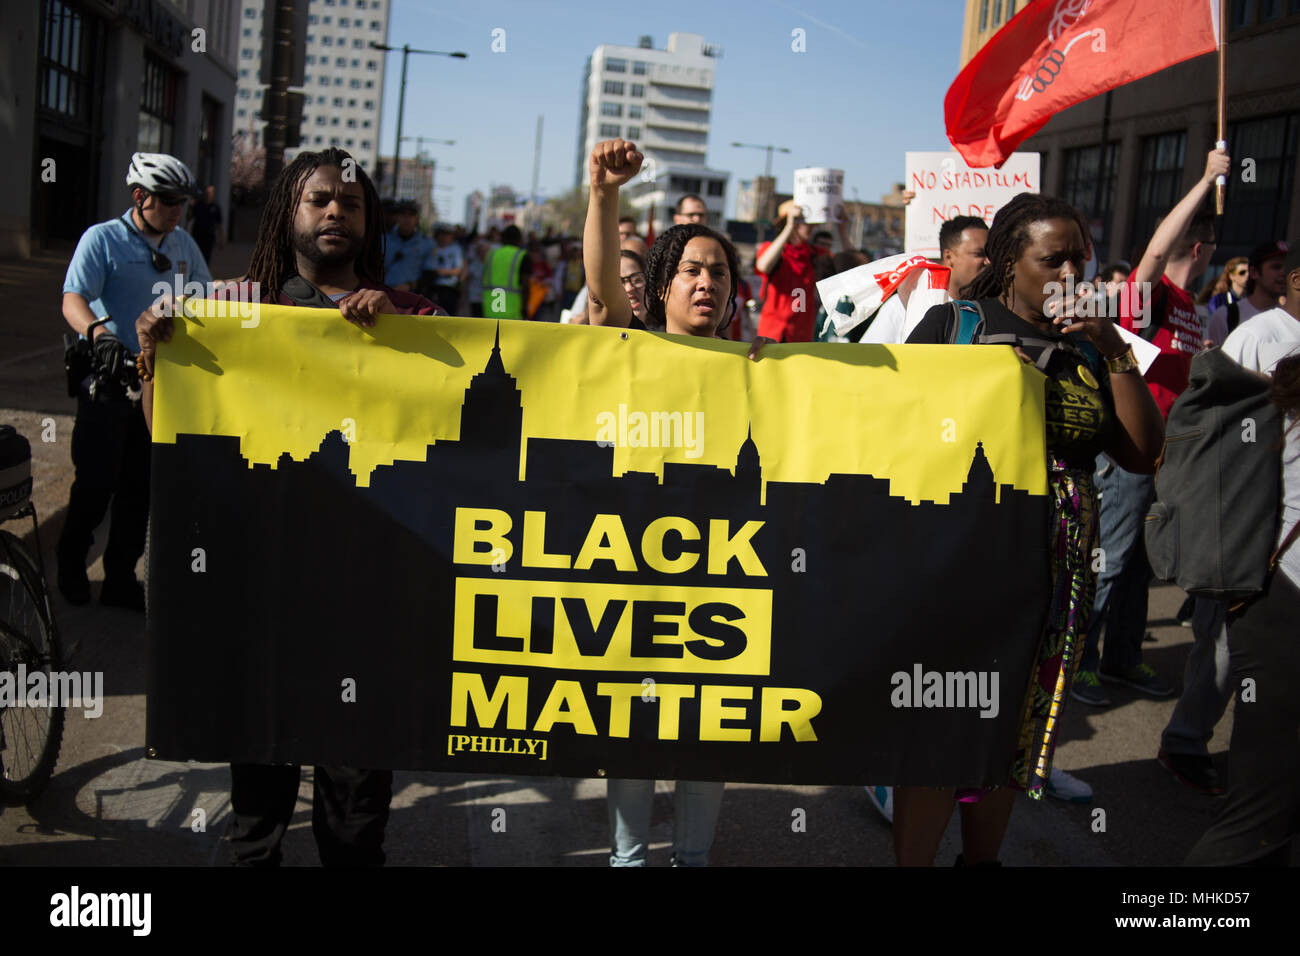 Philadelphia, USA. 1st May 2018. Protestors associated with the 'Stadium Stompers' march down Broad Street to voice opposition to the construction of a new athletic stadium adjacent to Temple University's campus in North Philadelphia, as part of May Day events in the city. Credit: Michael Candelori/Alamy Live News - Stock Image